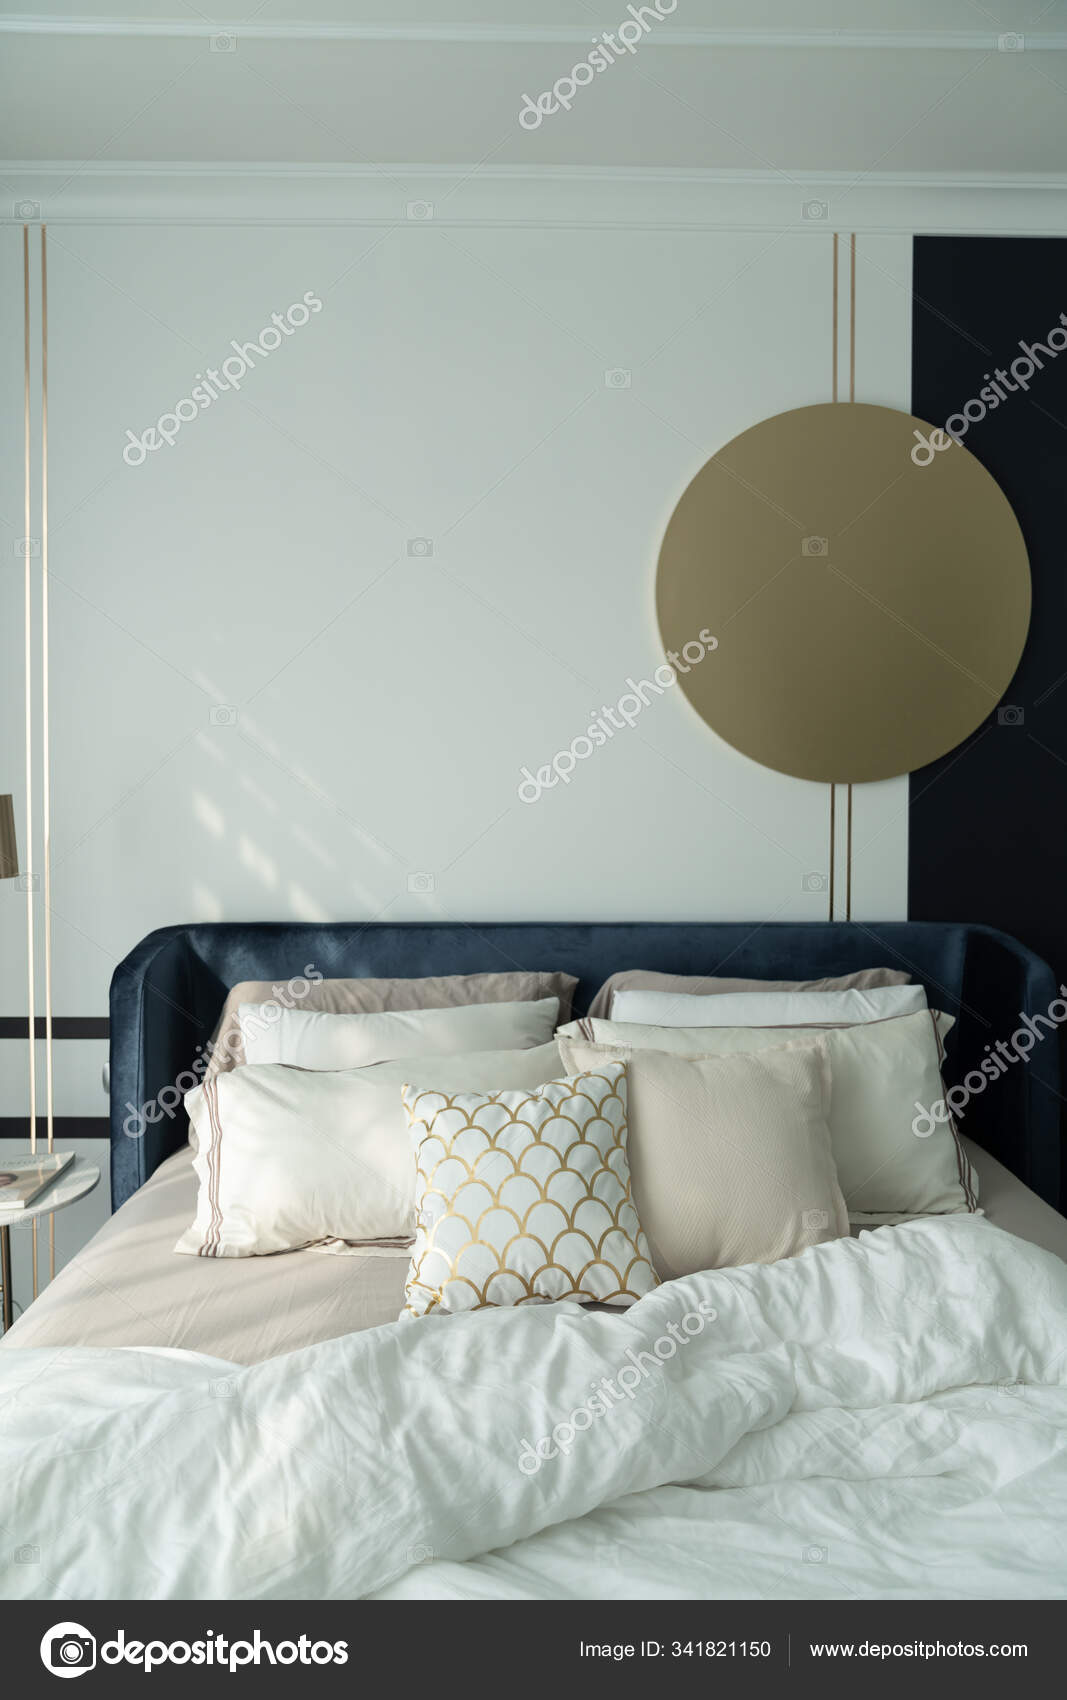 Bedroom Corner Navy Blue Velvet Bed With Soft Pillows Setting Decorated With Circular Marble Night Table And Navy Blue Paint Wall In The Background Cozy Interior Design Stock Photo C Nmc2s 341821150